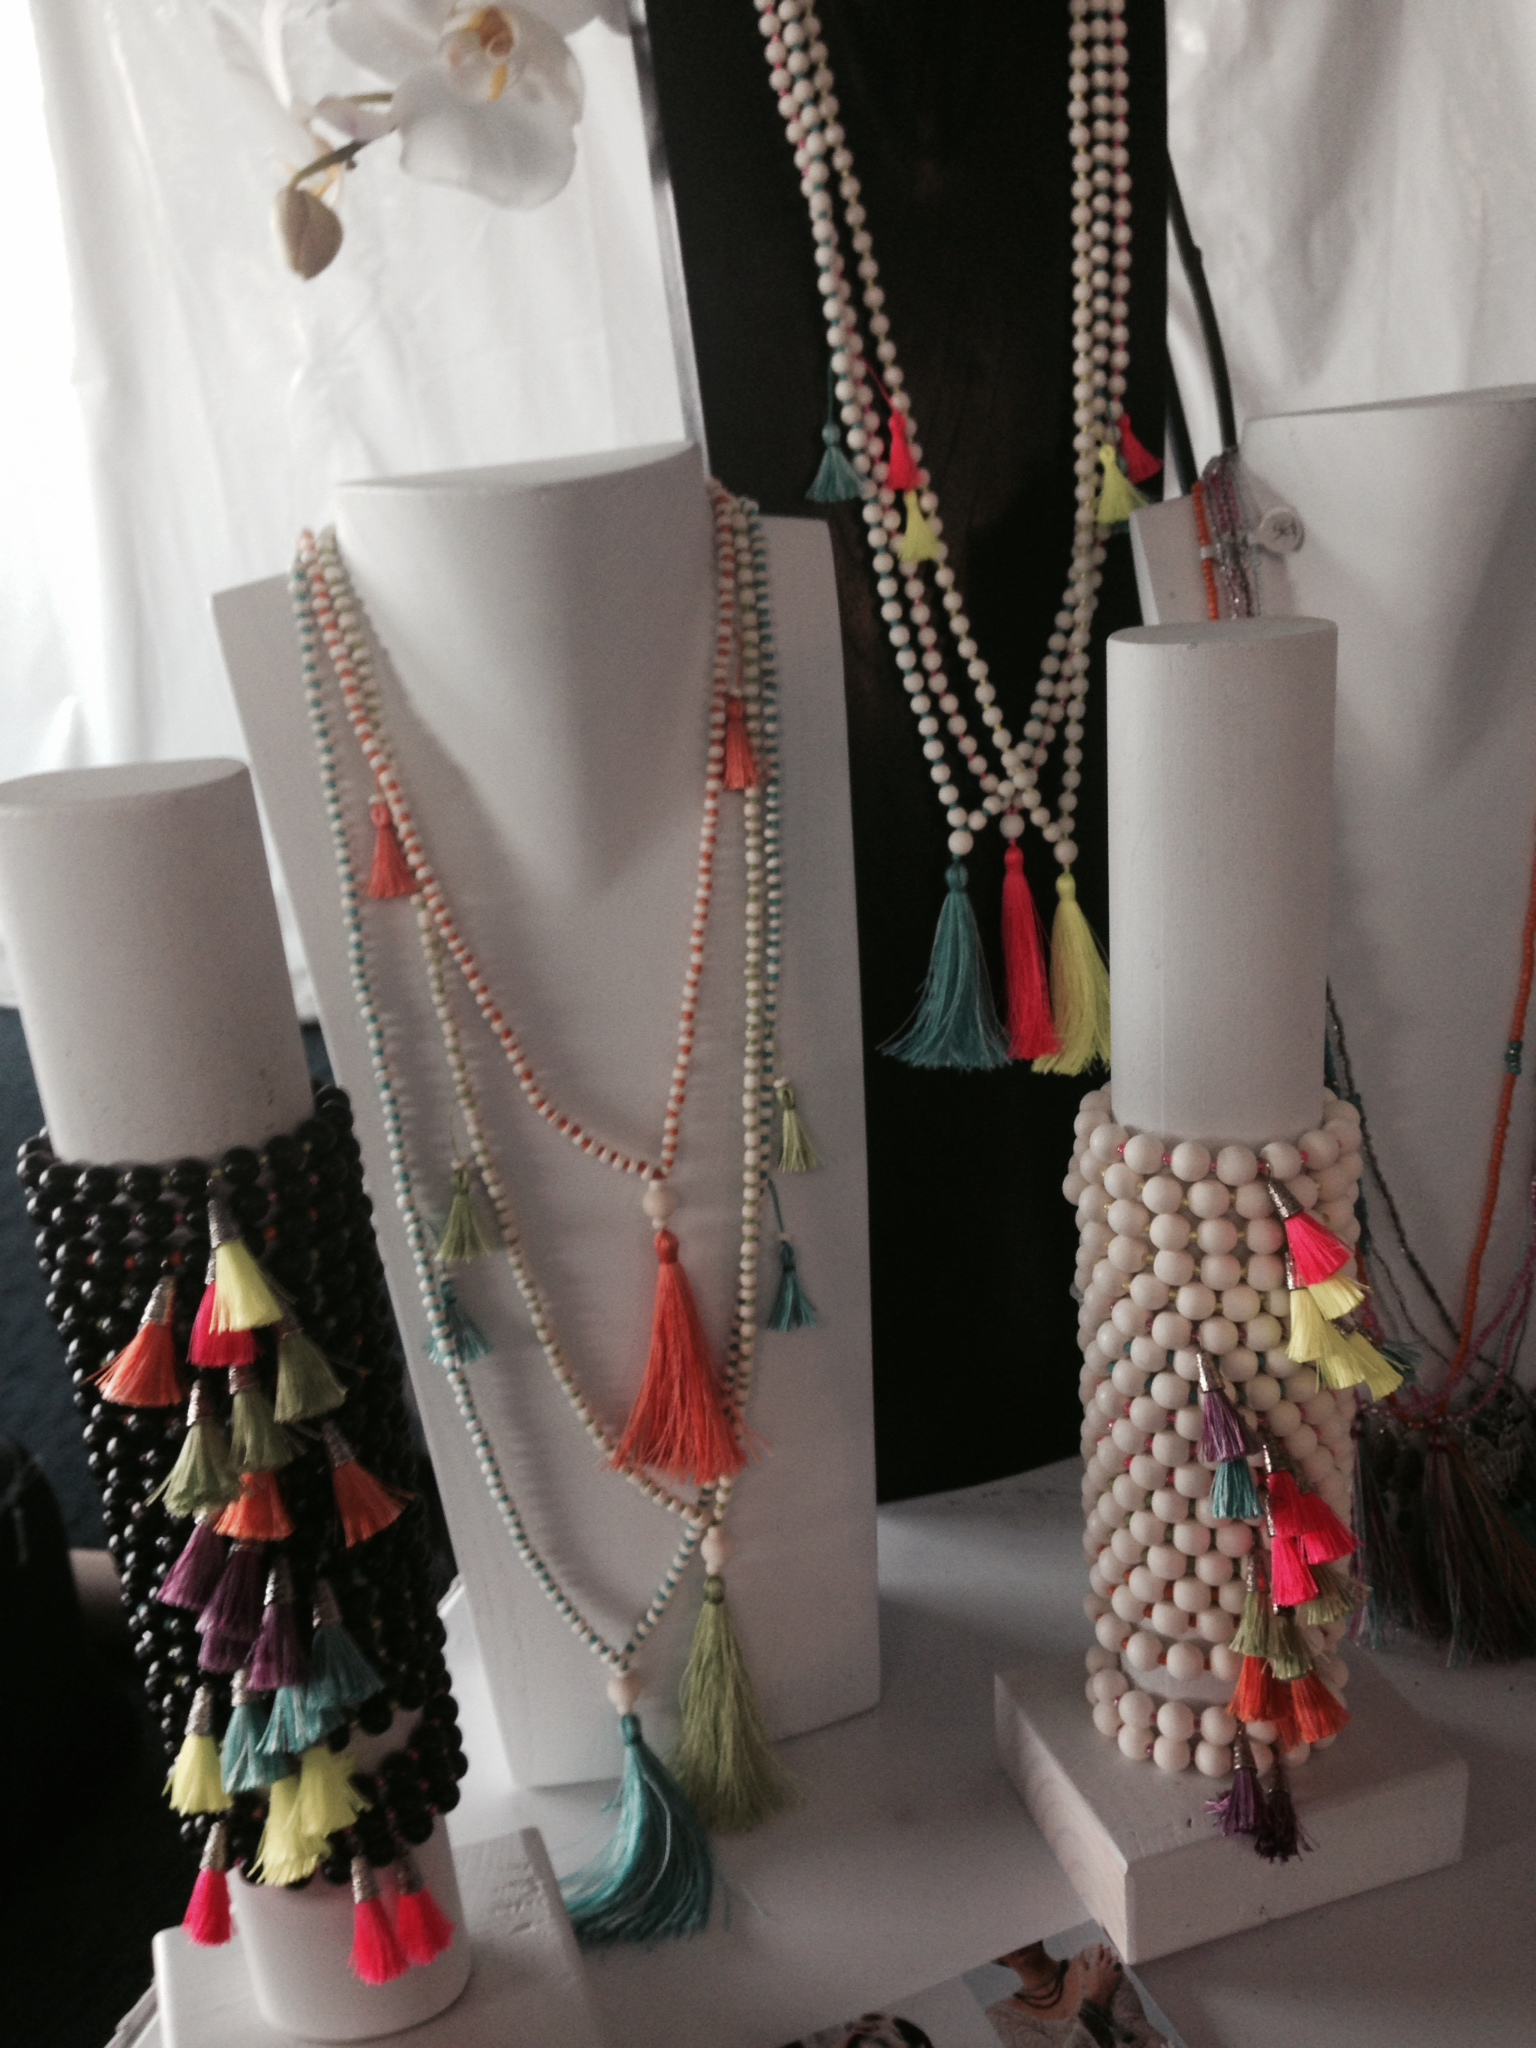 Our Moda Mala Collection makes its first debut at Yoga Journal Live!